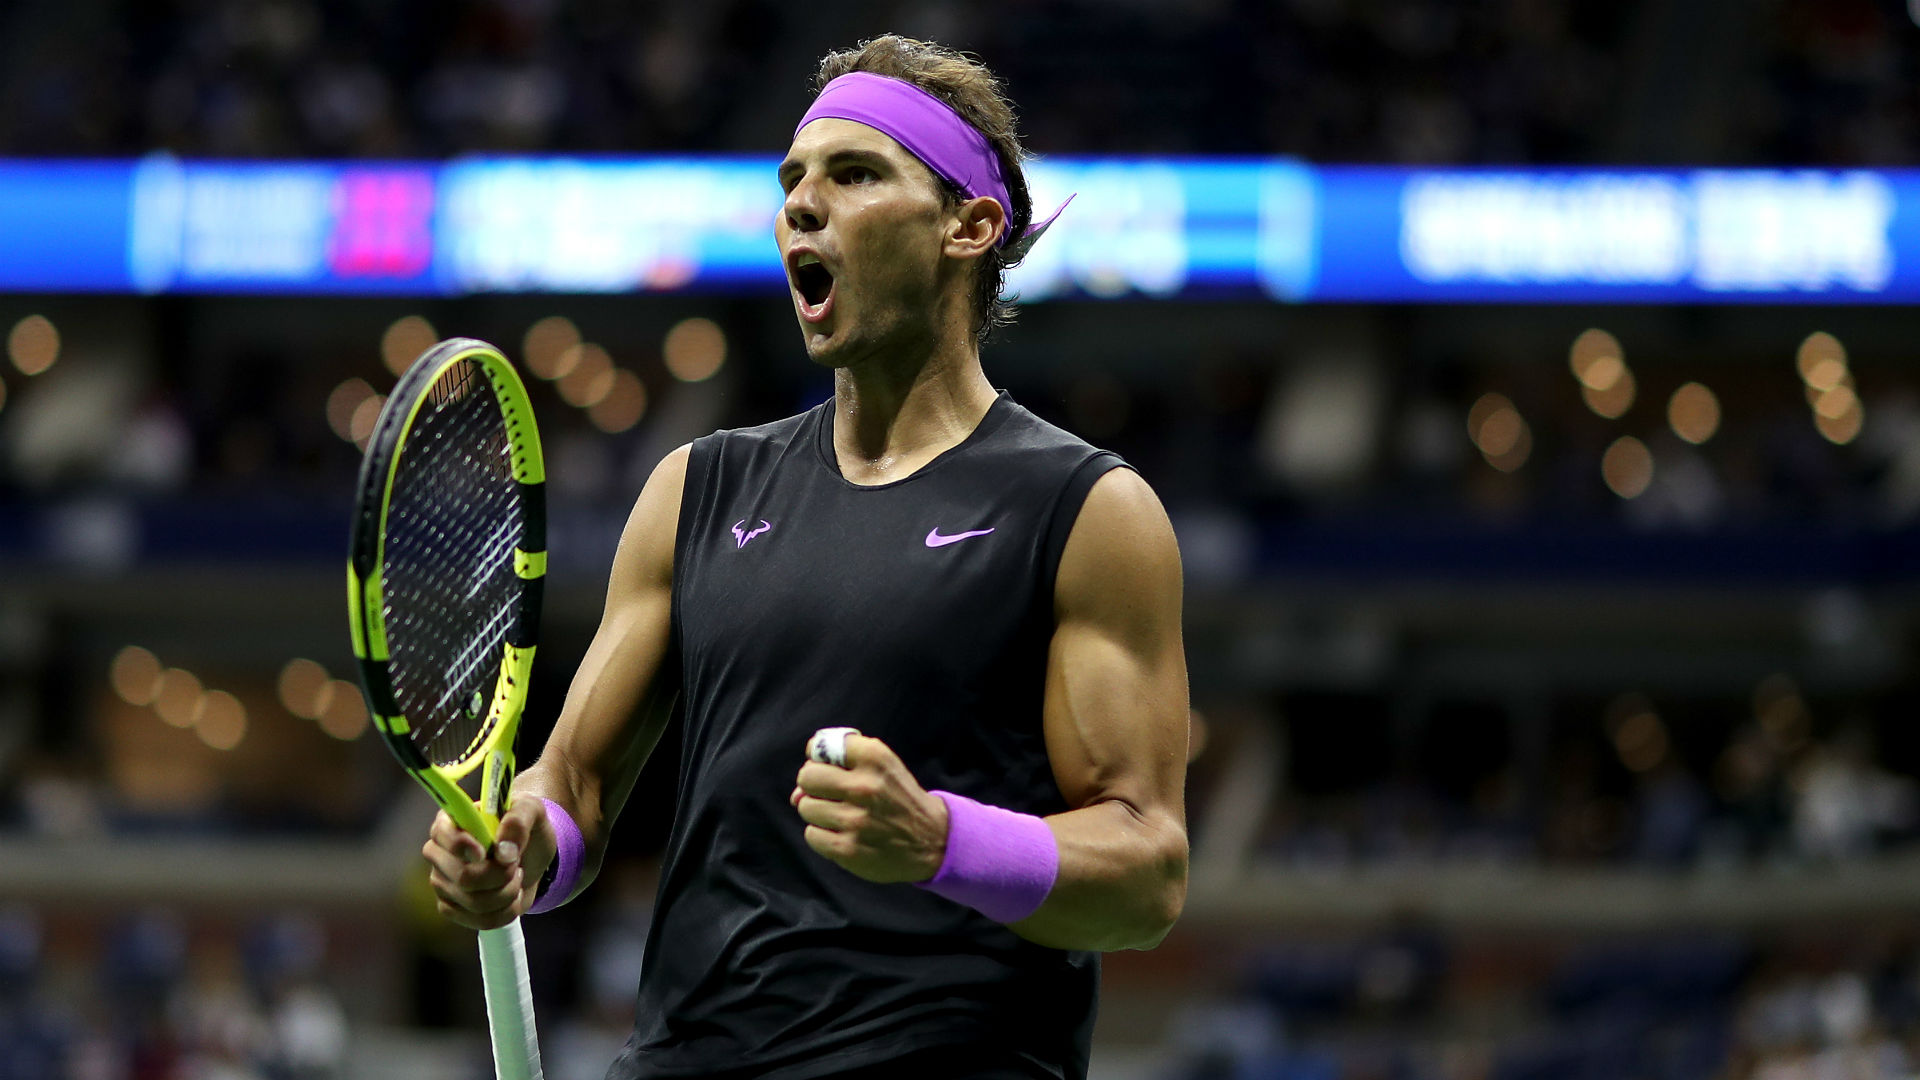 U.S. Open 2019: Rafael Nadal not motivated by maintaining ...